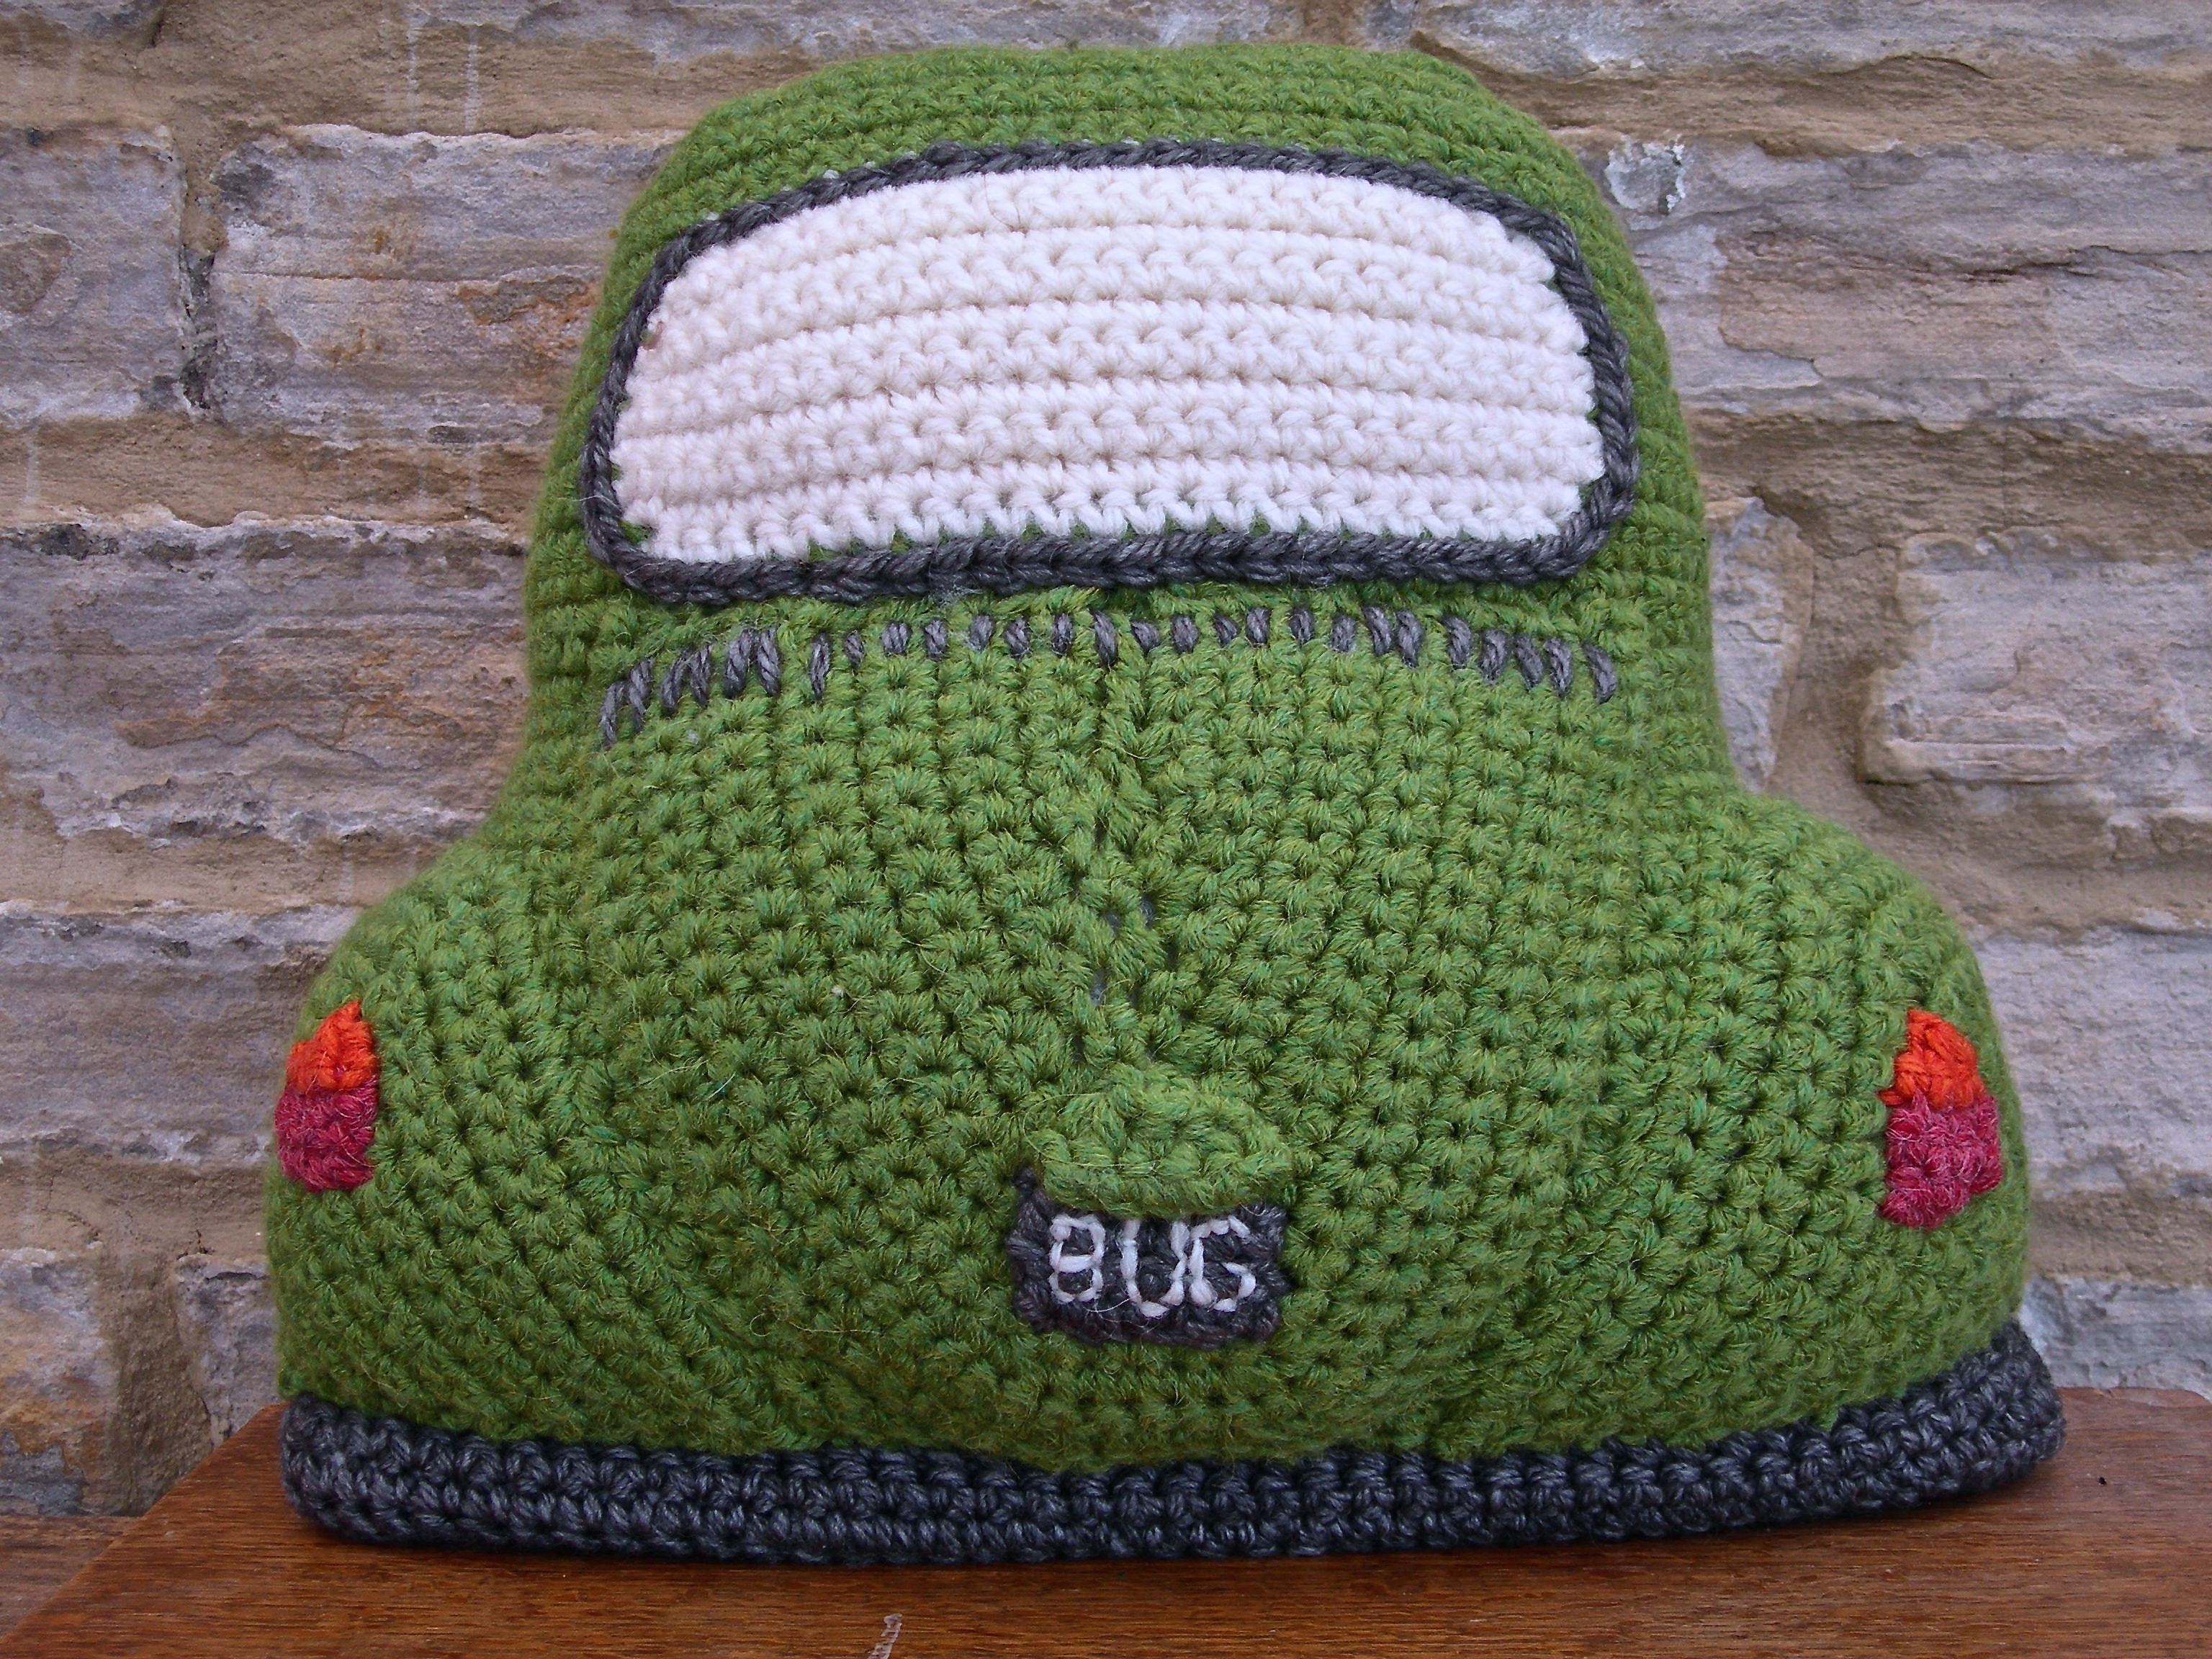 Beetle Cushion DSCN3715 : campervan cushion knitting pattern free  - pillowsntoast.com